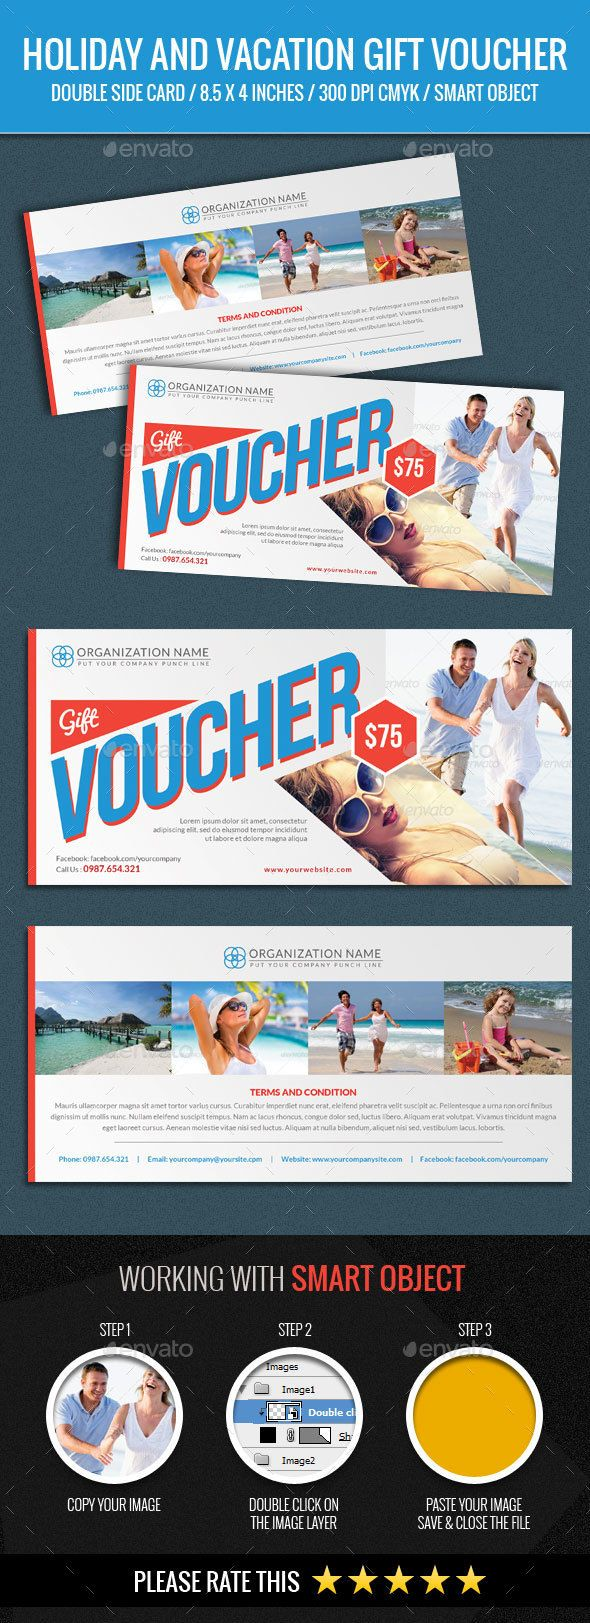 holiday and vacation gift voucher template psd design download